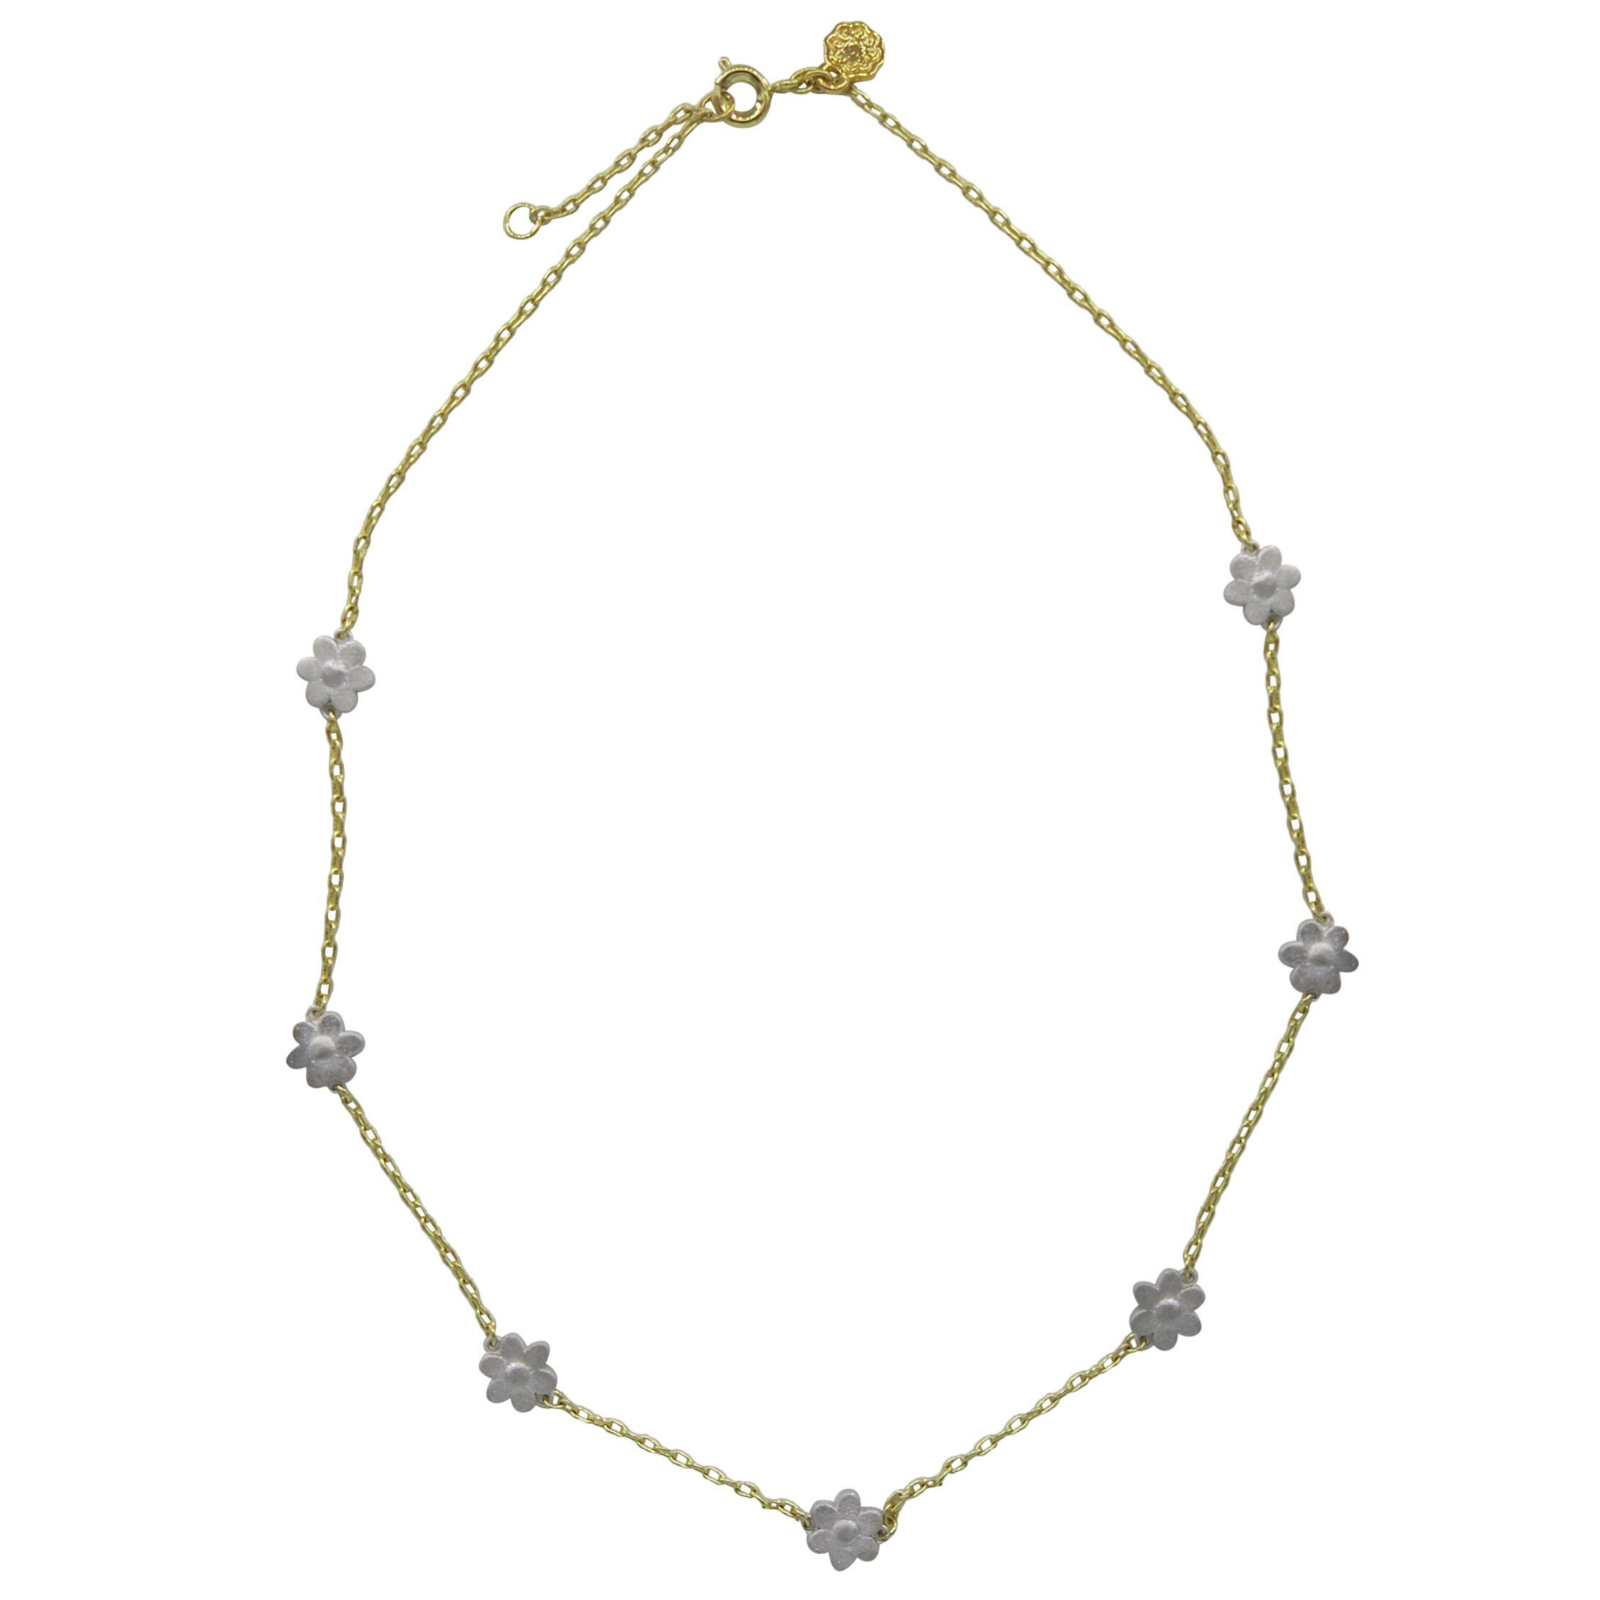 My Favorite Jewelry Designers For Unique Jewelry: Hart Hagerty Daisy Chain Necklace